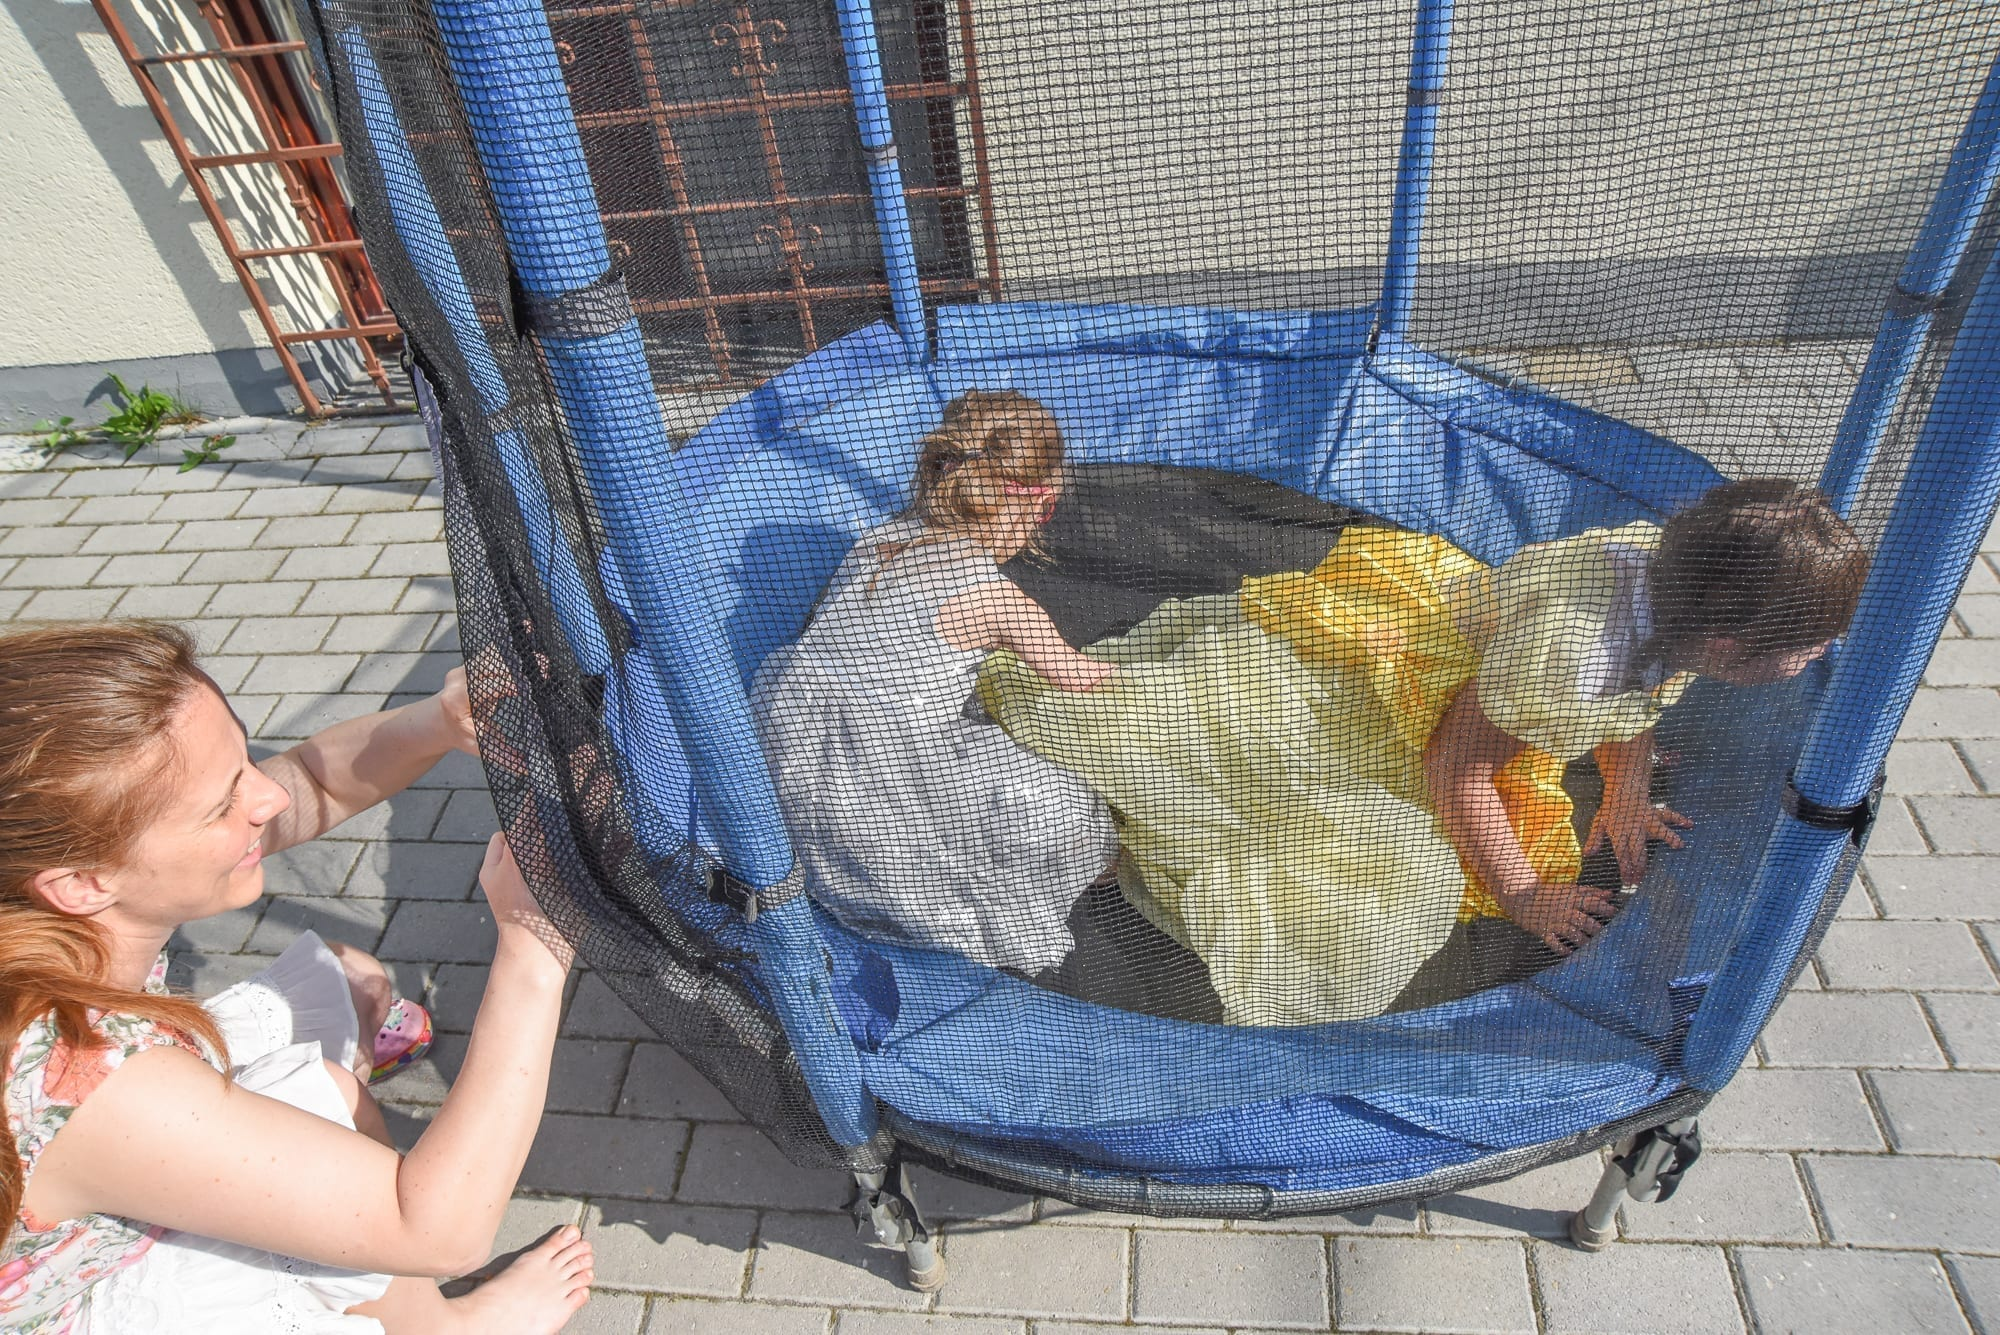 two little girls playing on a trampoline with a woman by them